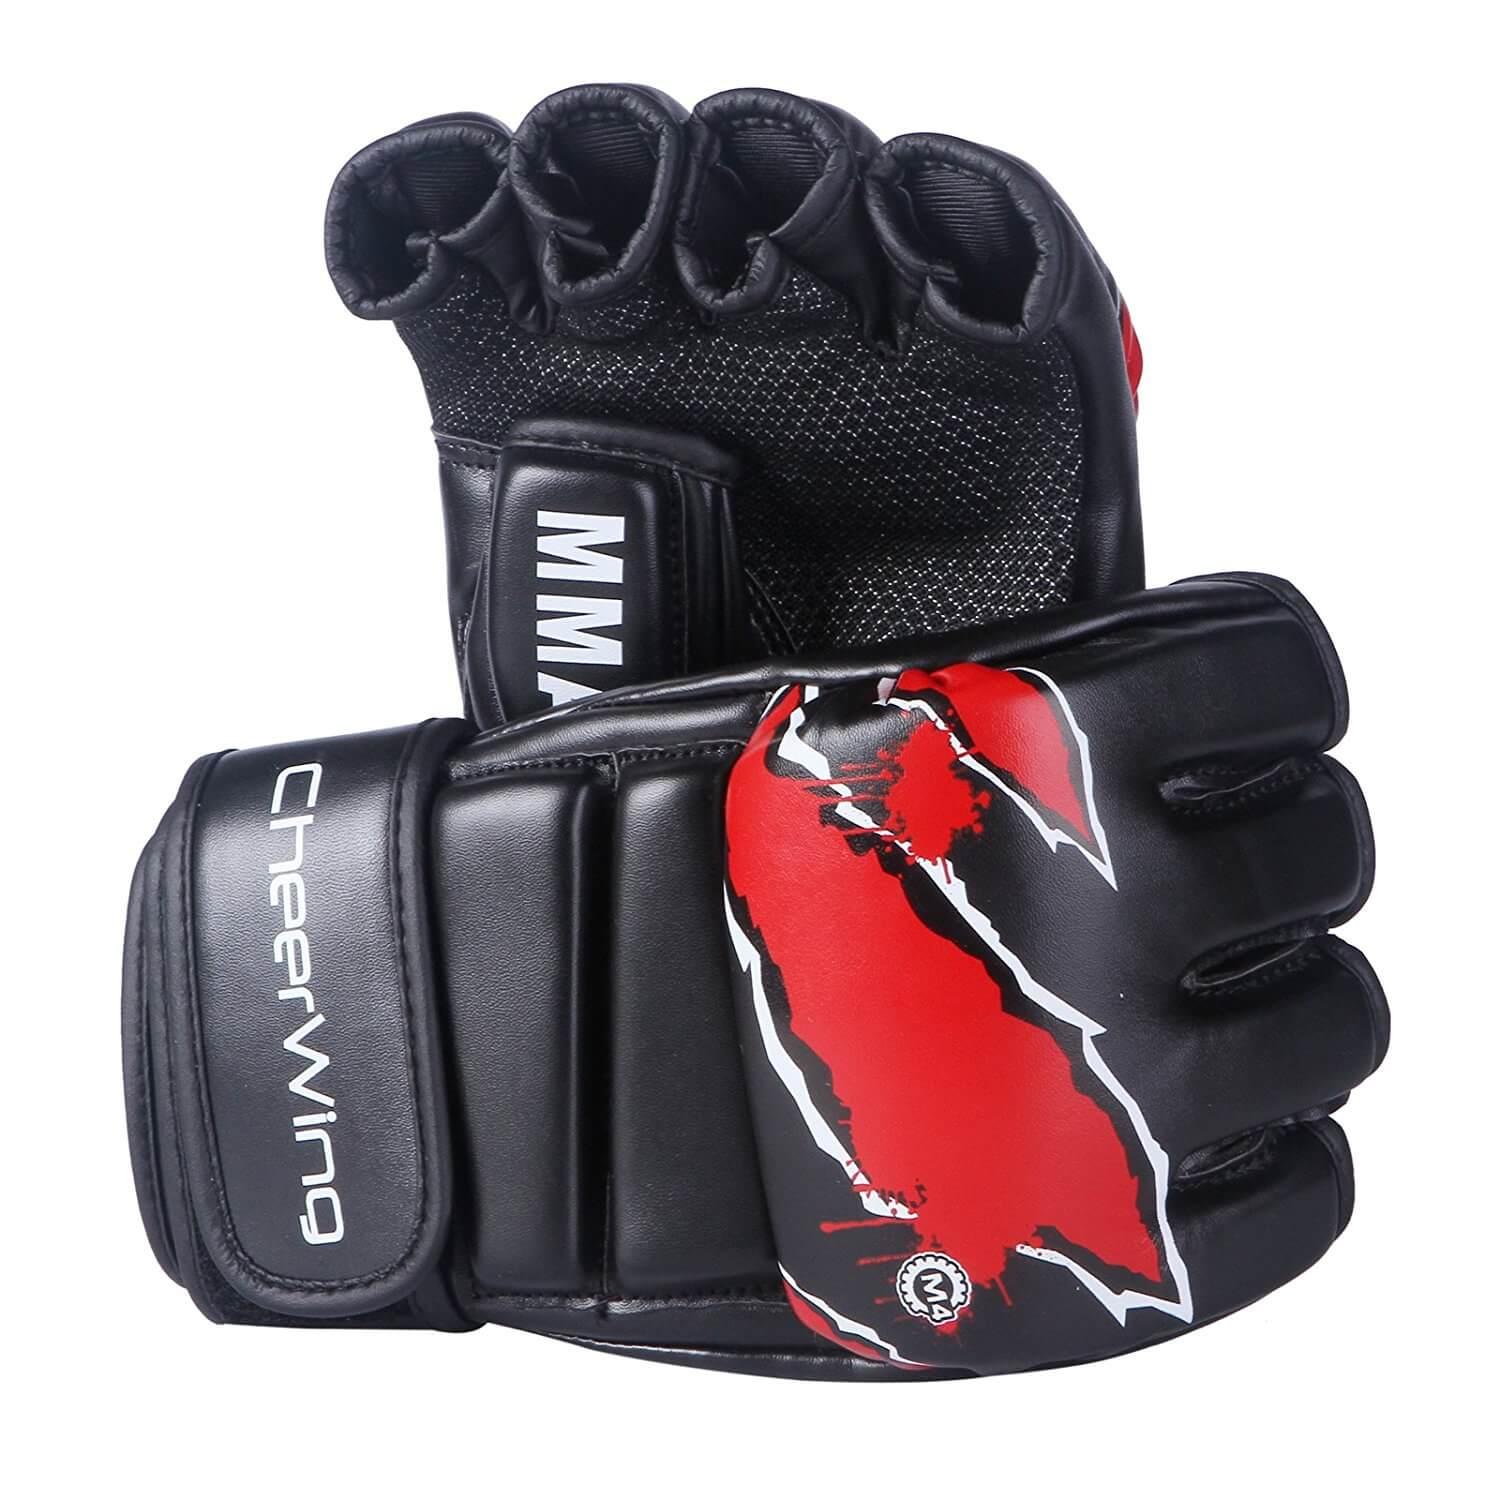 1. Cheerwing Sparring Gloves